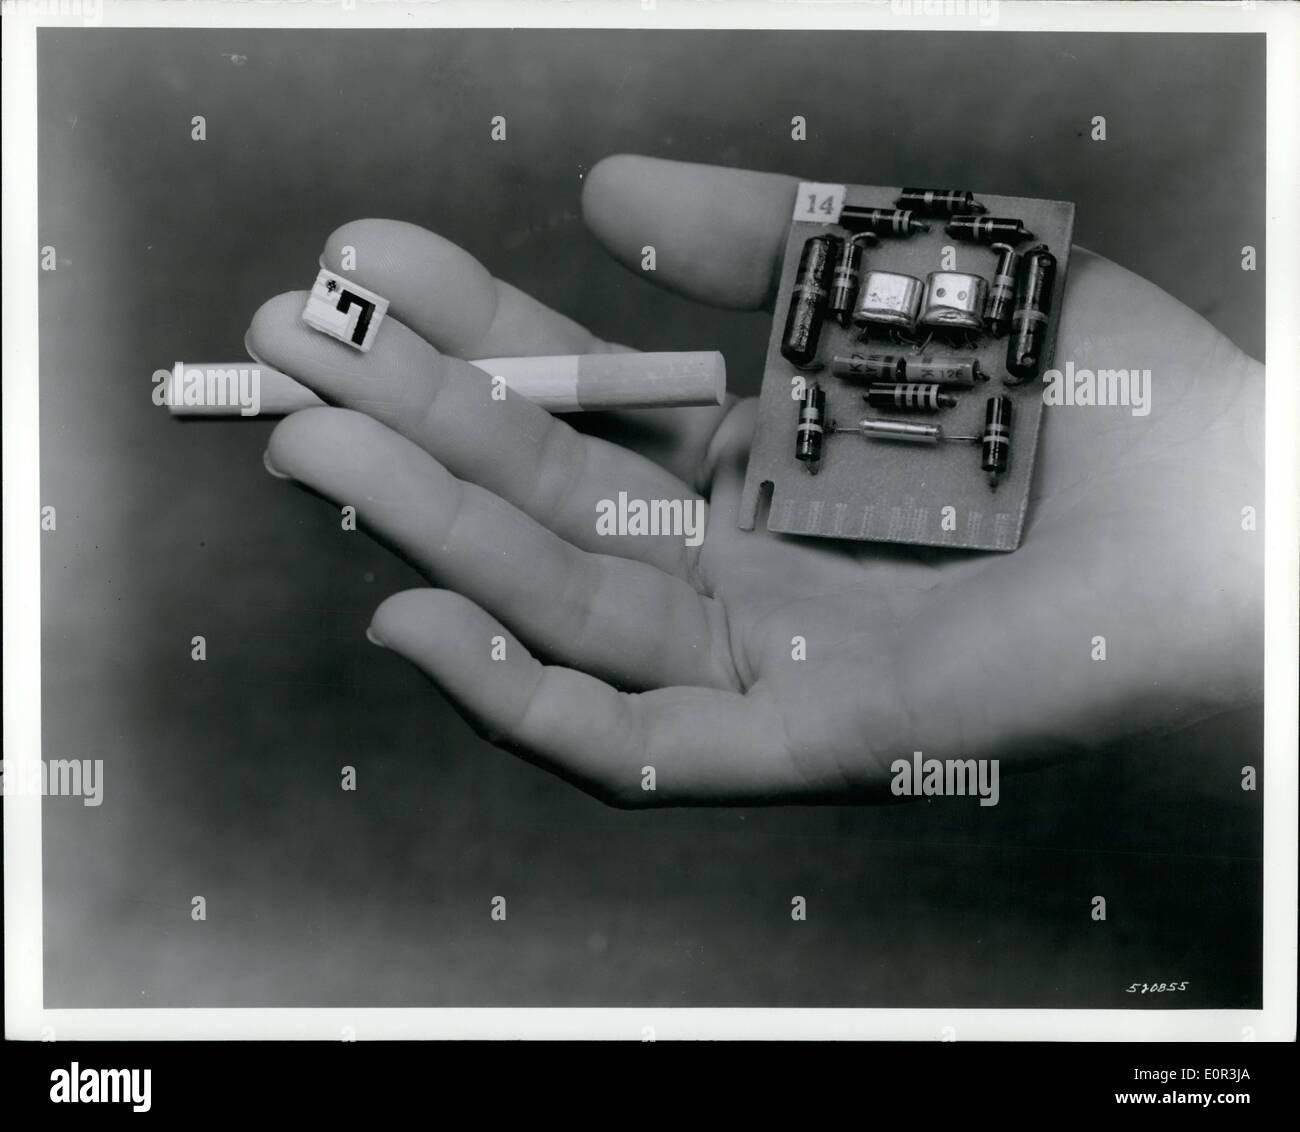 Nov. 11, 1957 - Printed Circuit Transistors, To Reduce Size of ''Electric Brains'' are announced by Department of the Army: Printed circuit transistors, developed by US Army research scientist Dr. J W Lathrop, will greatly reduced the size of many items of military army equipment including the electronic brain of guided missiles aircraft, Department of Army announced today. Use of the printed circuit method produces a transistor about 1/20th of an inch wide and 1/100th of an inch high and provides increased reliability and resistance to shock or vibration - Stock Image